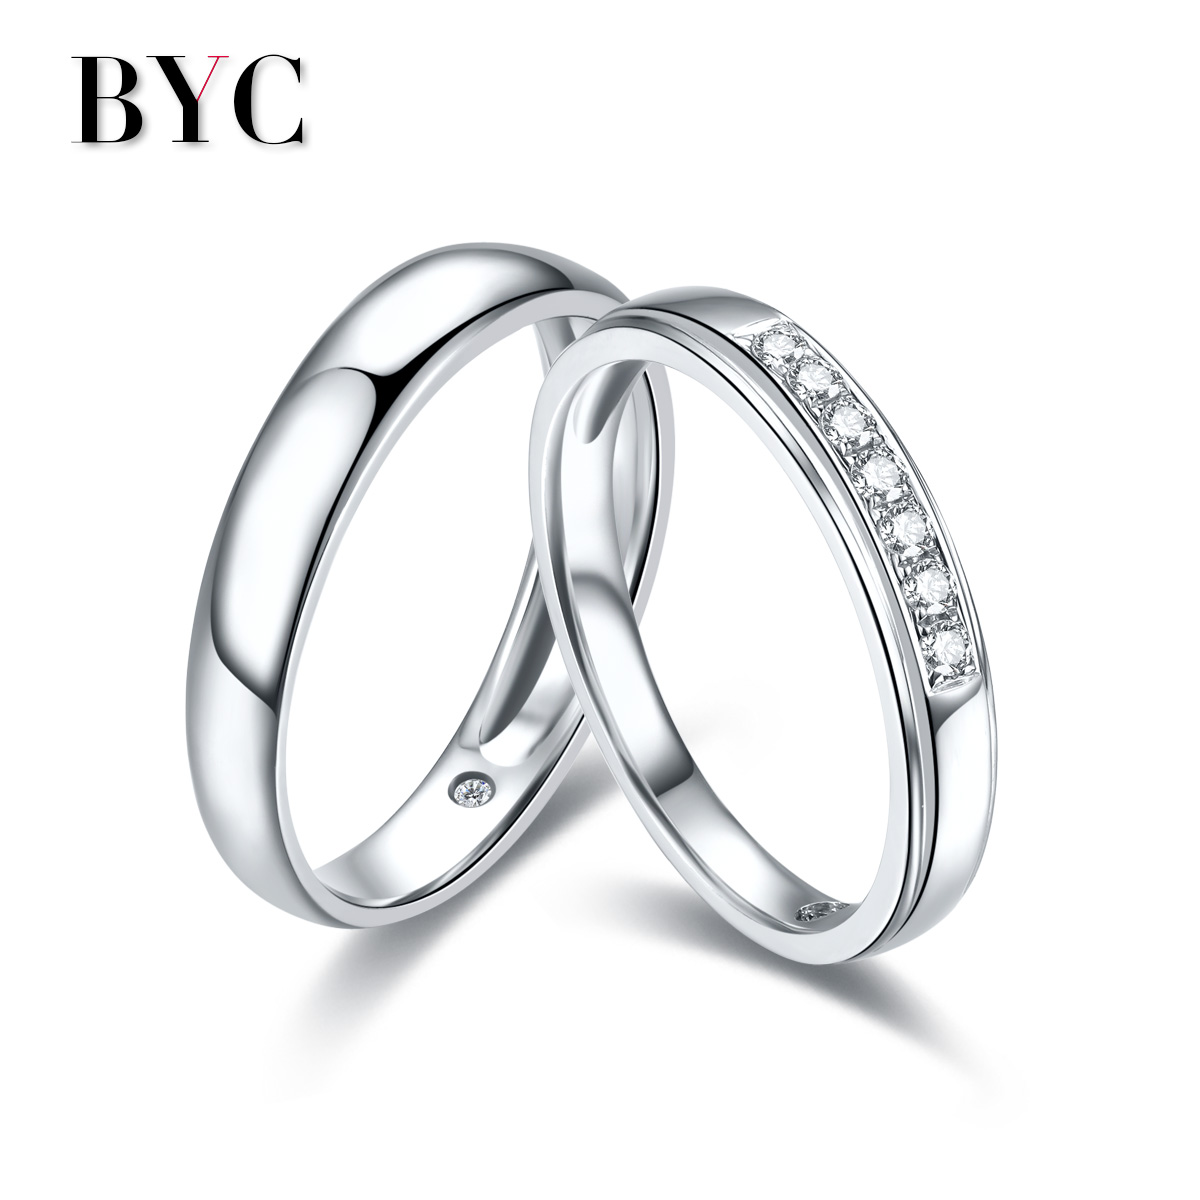 Schroder chang byc k white gold diamond ring diamond rings for men and women group inlay wedding ring counter genuine